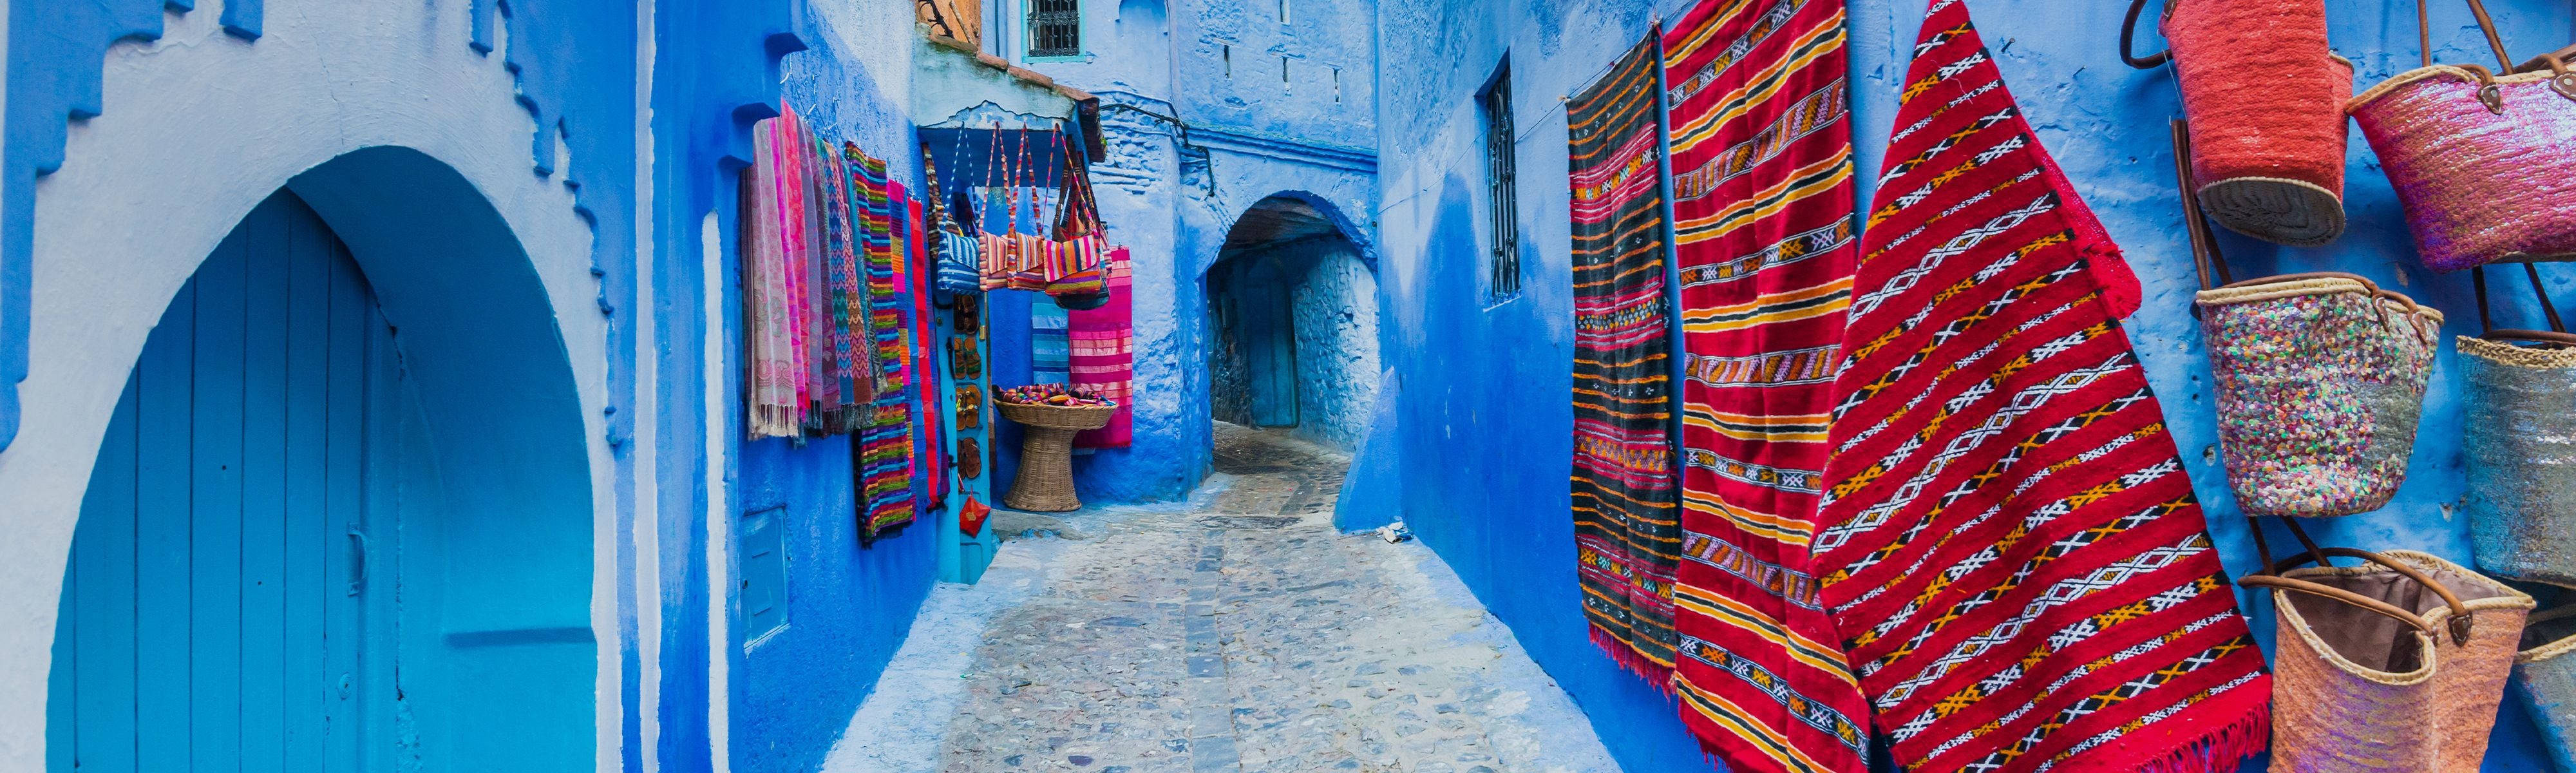 red and white tapestries handing on blue painted building in morocco